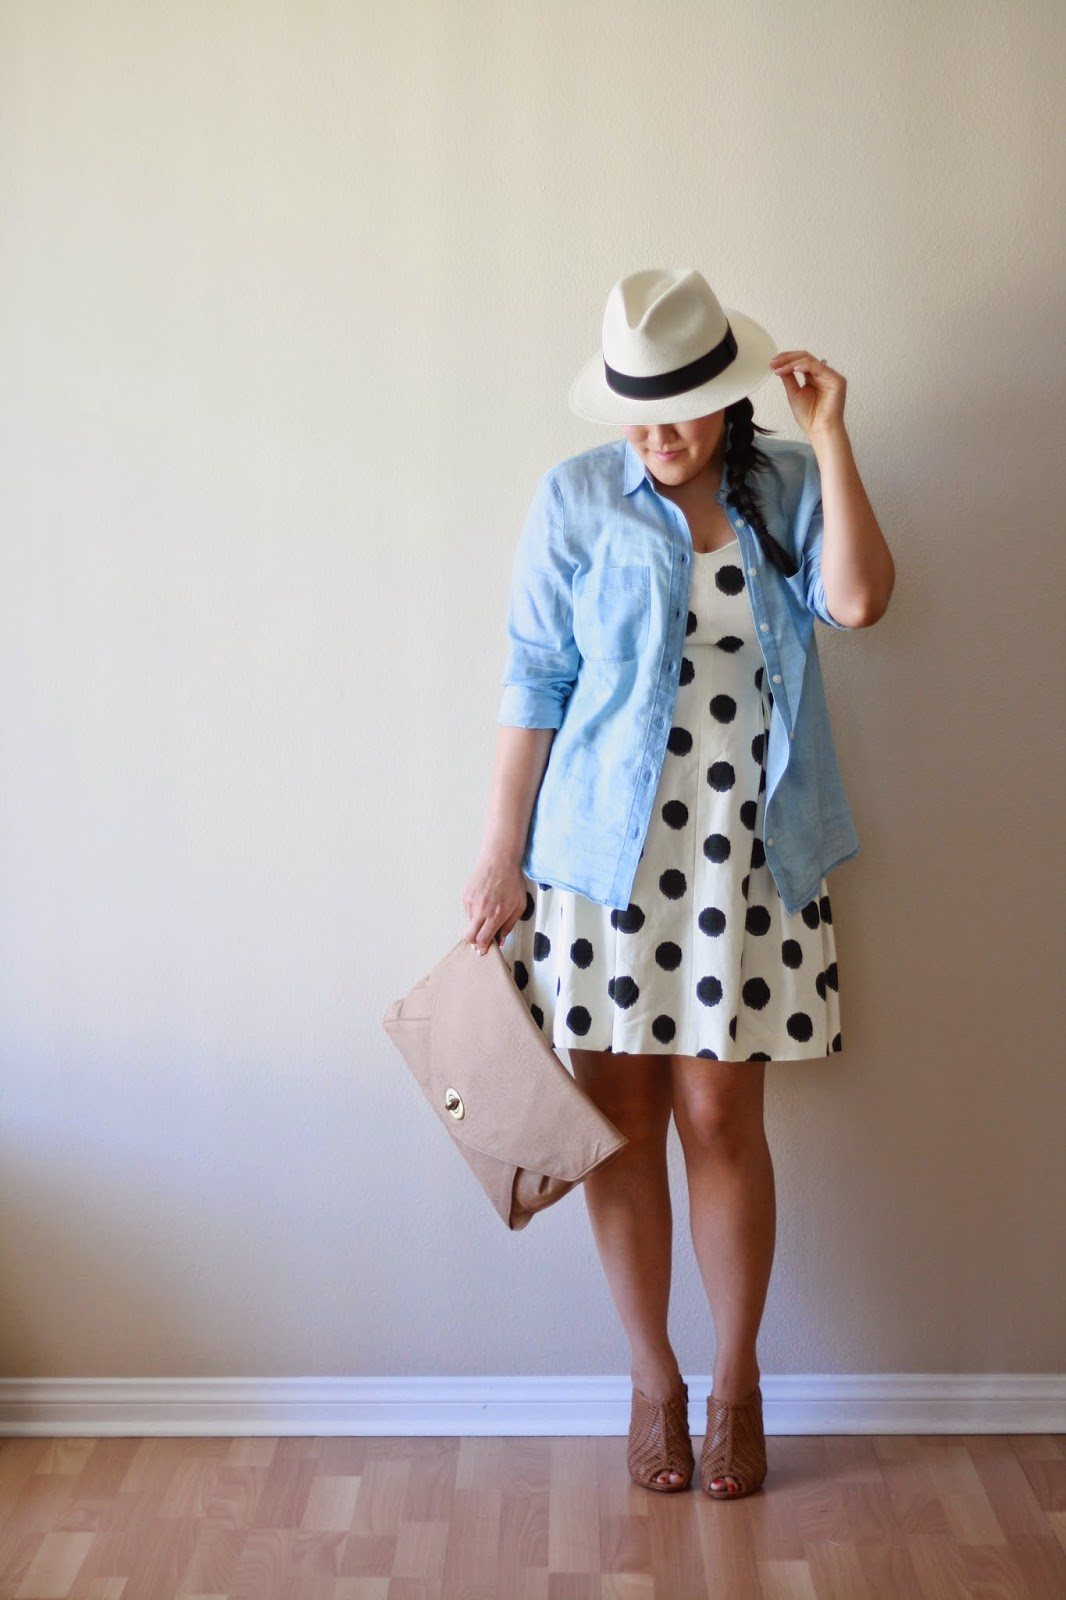 blogger, style blogger, fashion blogger, california blogger, ann taylor, loft, loft girl, polka dot dress, chambray shirt, jcrew, panama hat